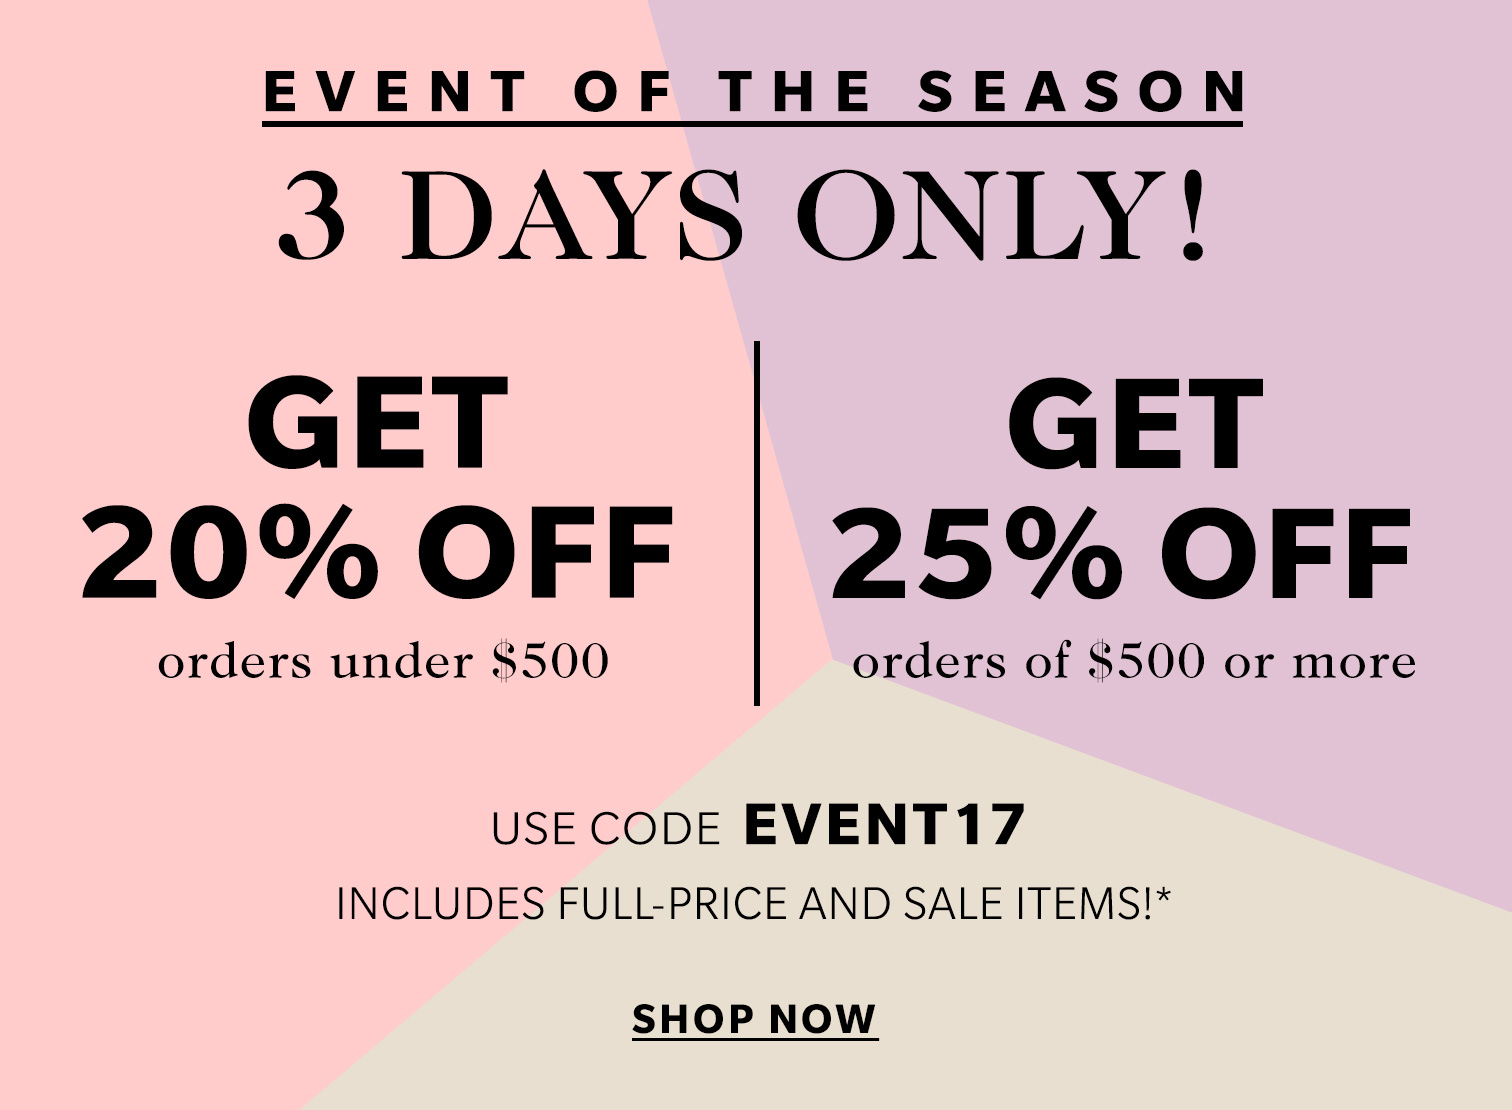 shopbop-event-of-the-year-sale-promocode